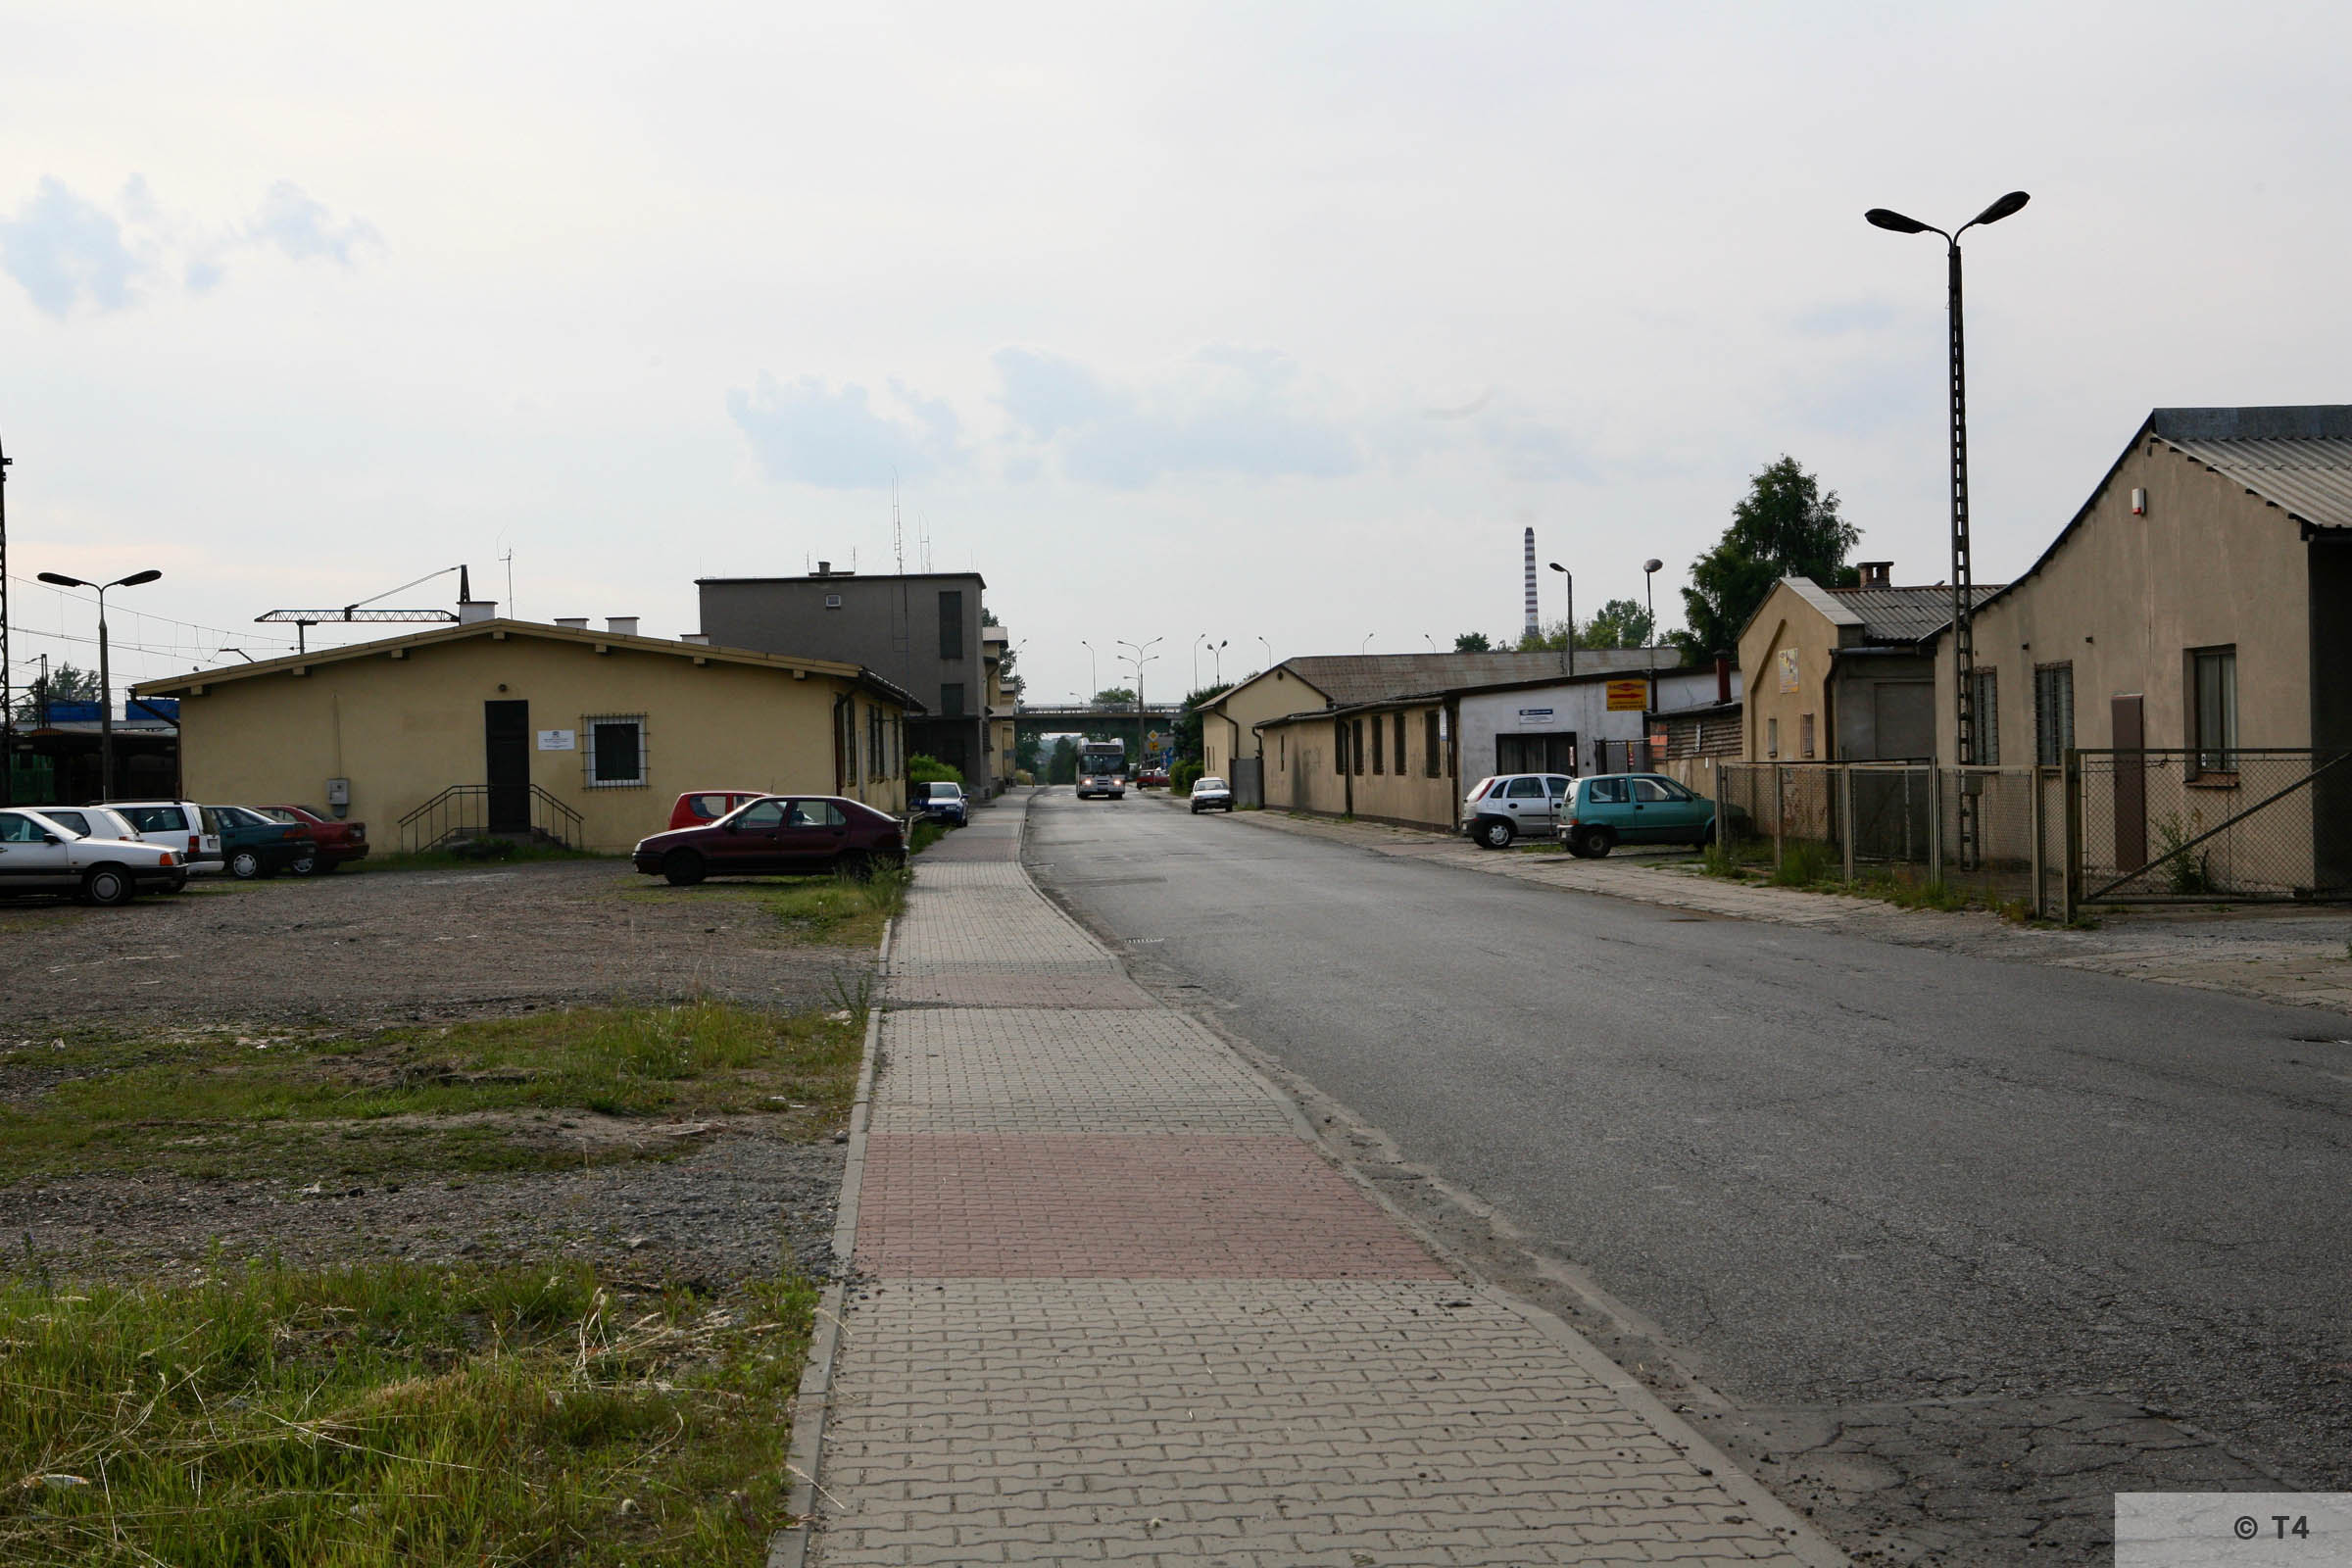 Barracks near Trzebinia railway station. 2007 T4 4748